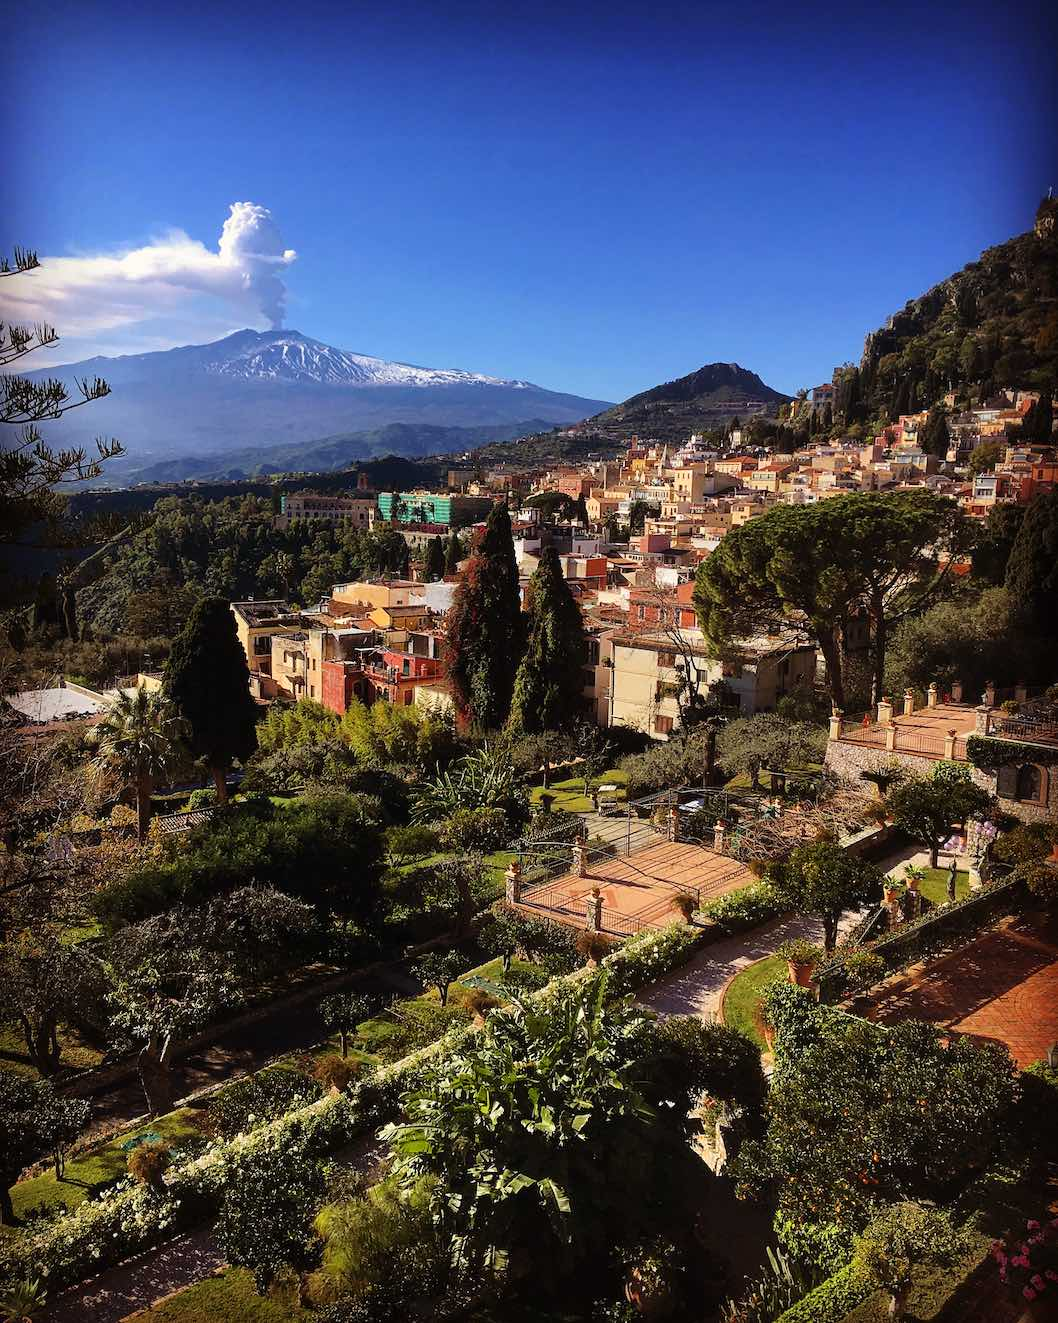 Taormina from the balcony of the Belmond with Mount Etna smoking in the distance